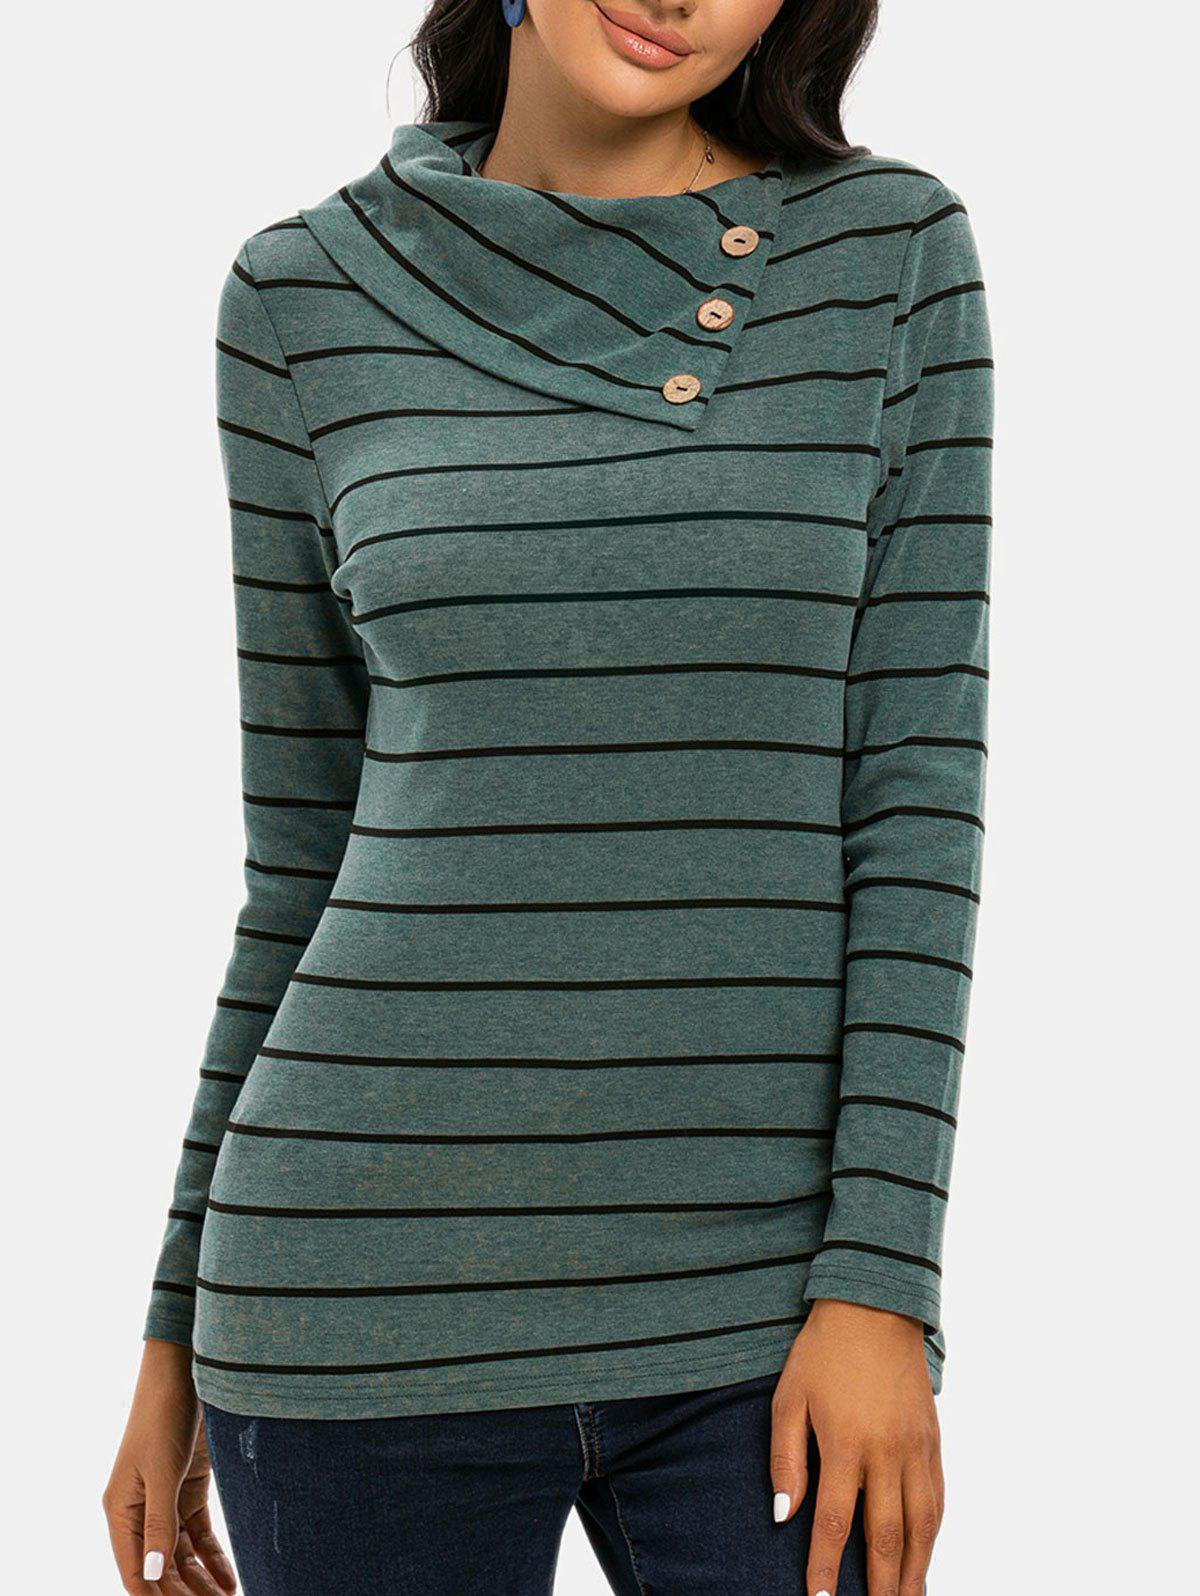 DressLily / Striped Print Mock Button T-shirt